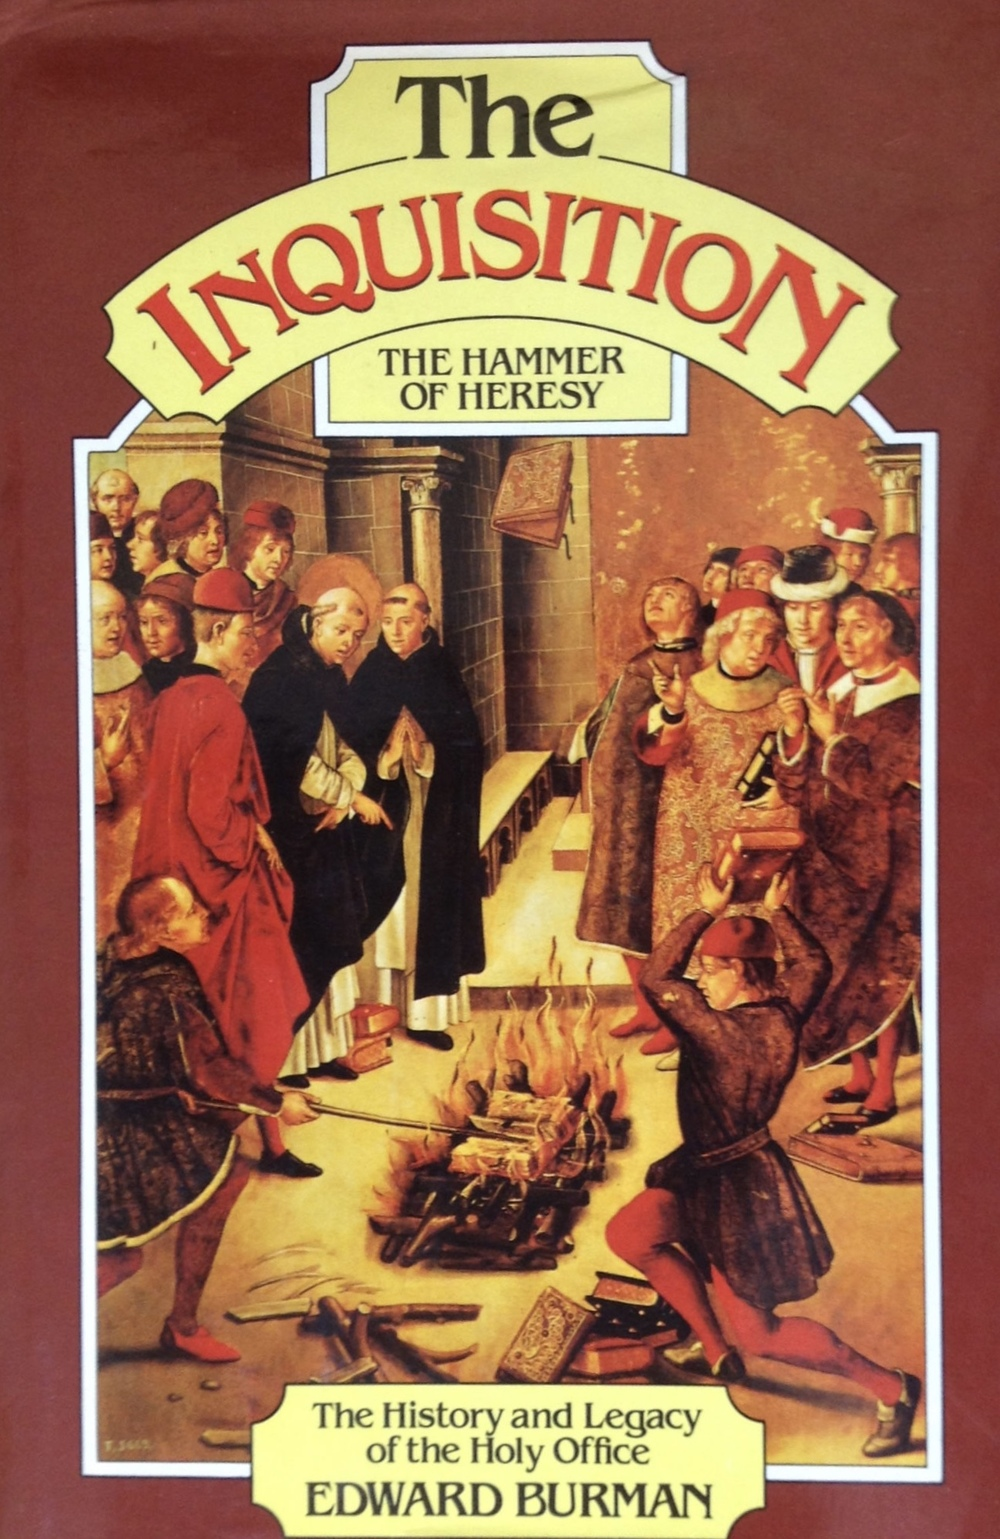 The original hardback edition, 1984